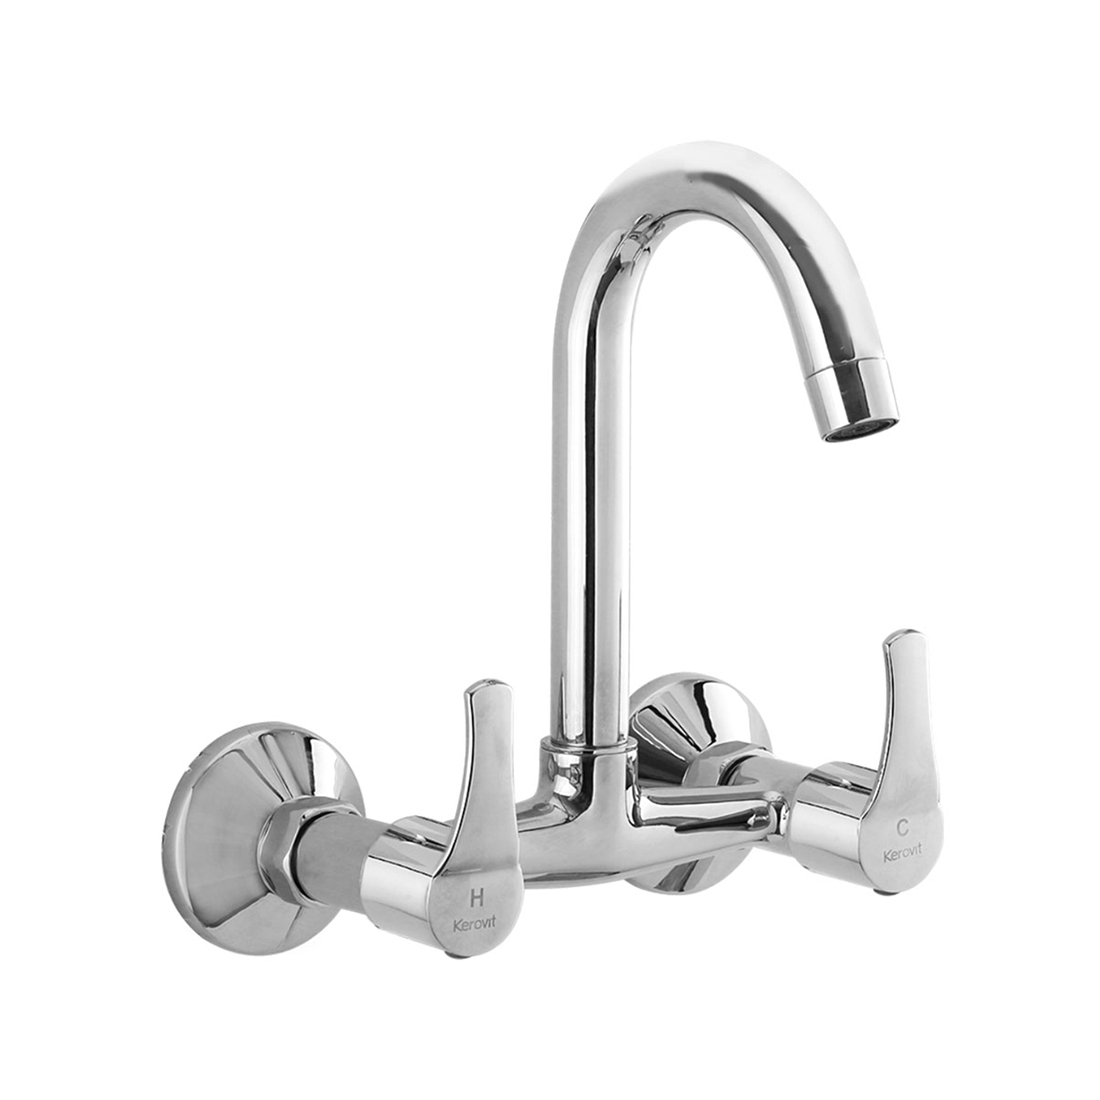 Kerovit Infinit KB2011024 Sink Mixer With Swivel Spout and Flange